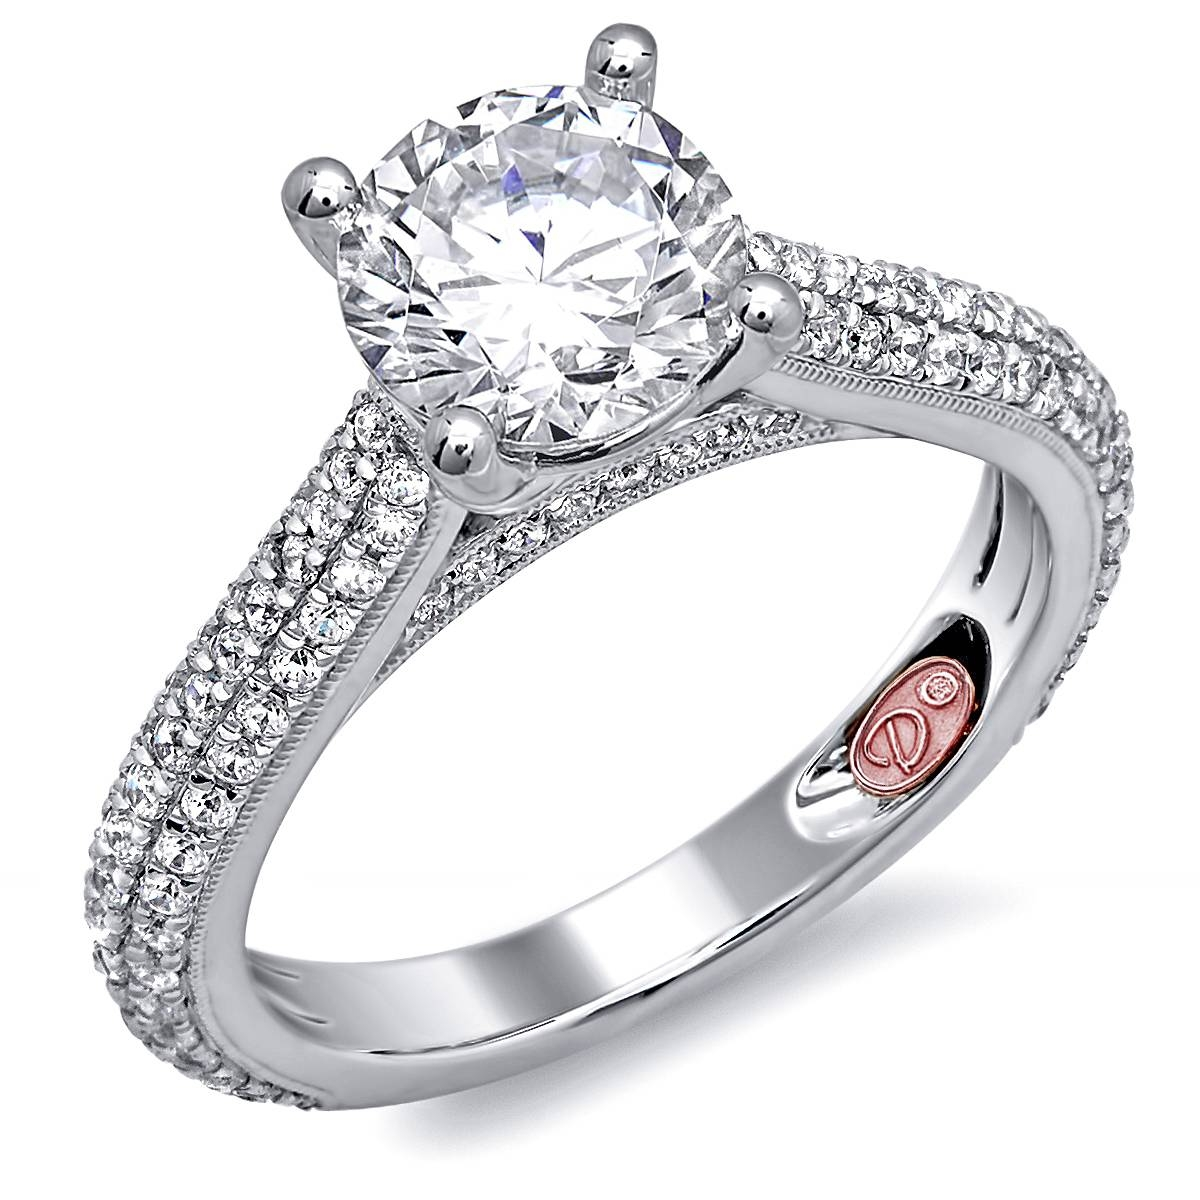 Designer Engagement Ring | Demarco Bridal Jewelry Official Blog Throughout Designing An Engagement Rings (View 3 of 15)